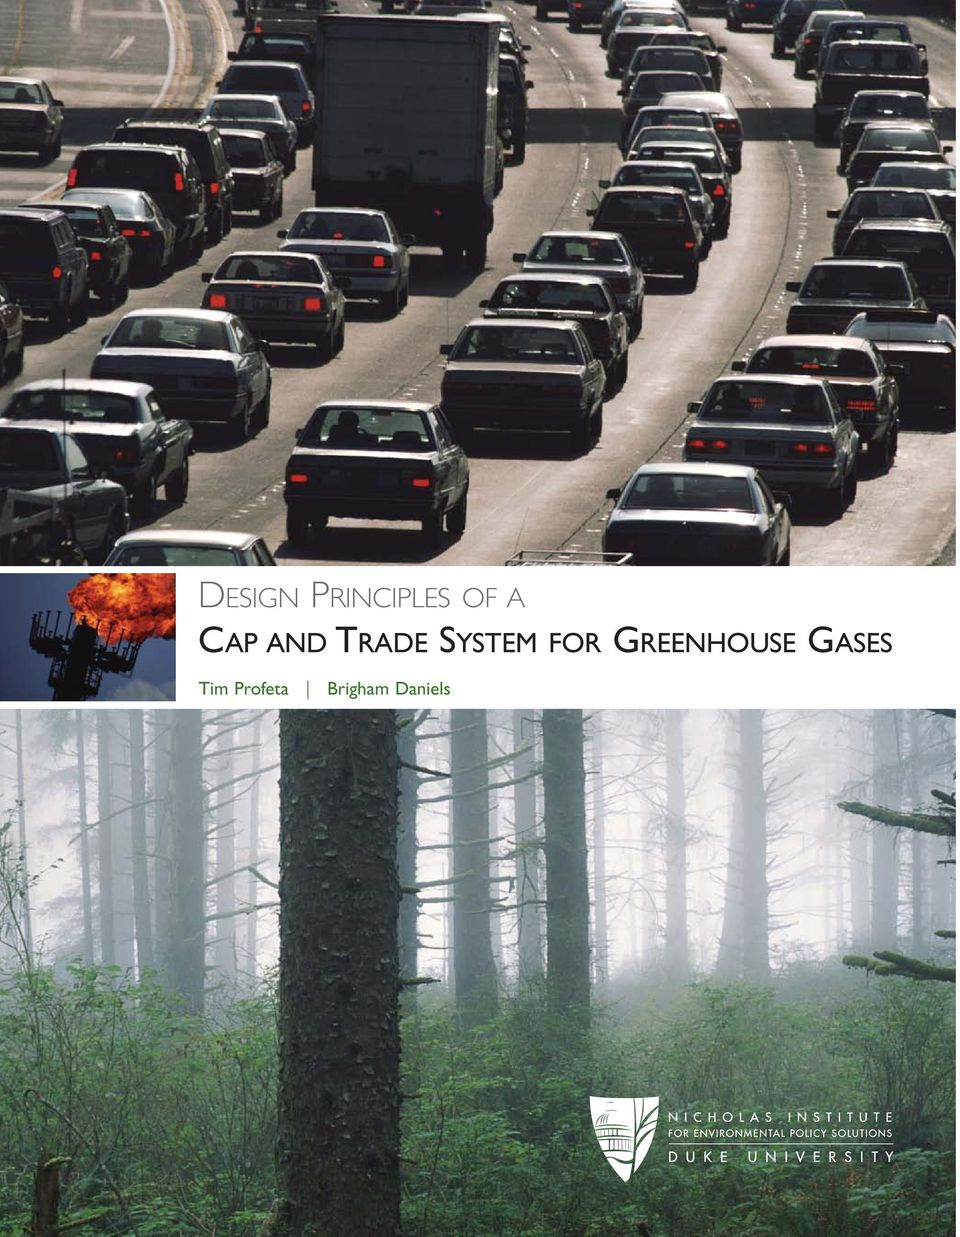 FOR GREENHOUSE GASES